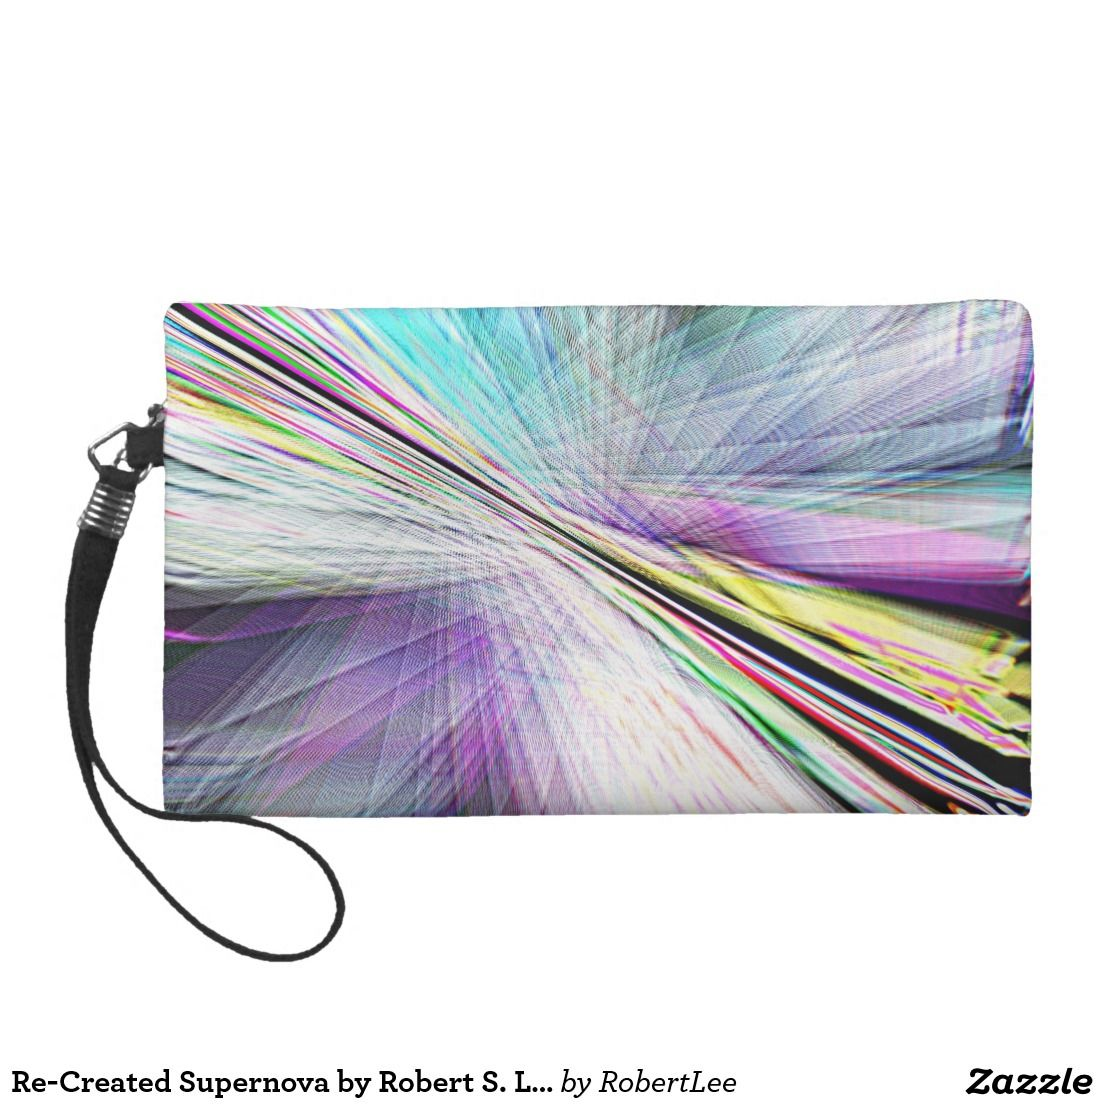 Re-Created Supernova by Robert S. Lee Wristlets #Robert #S. #Lee #art #graphic #design #colors #bag #wristlet #purse #ladies #girls #women #love #style #fashion #accessory #for #her #gift #want #need #love #customizable